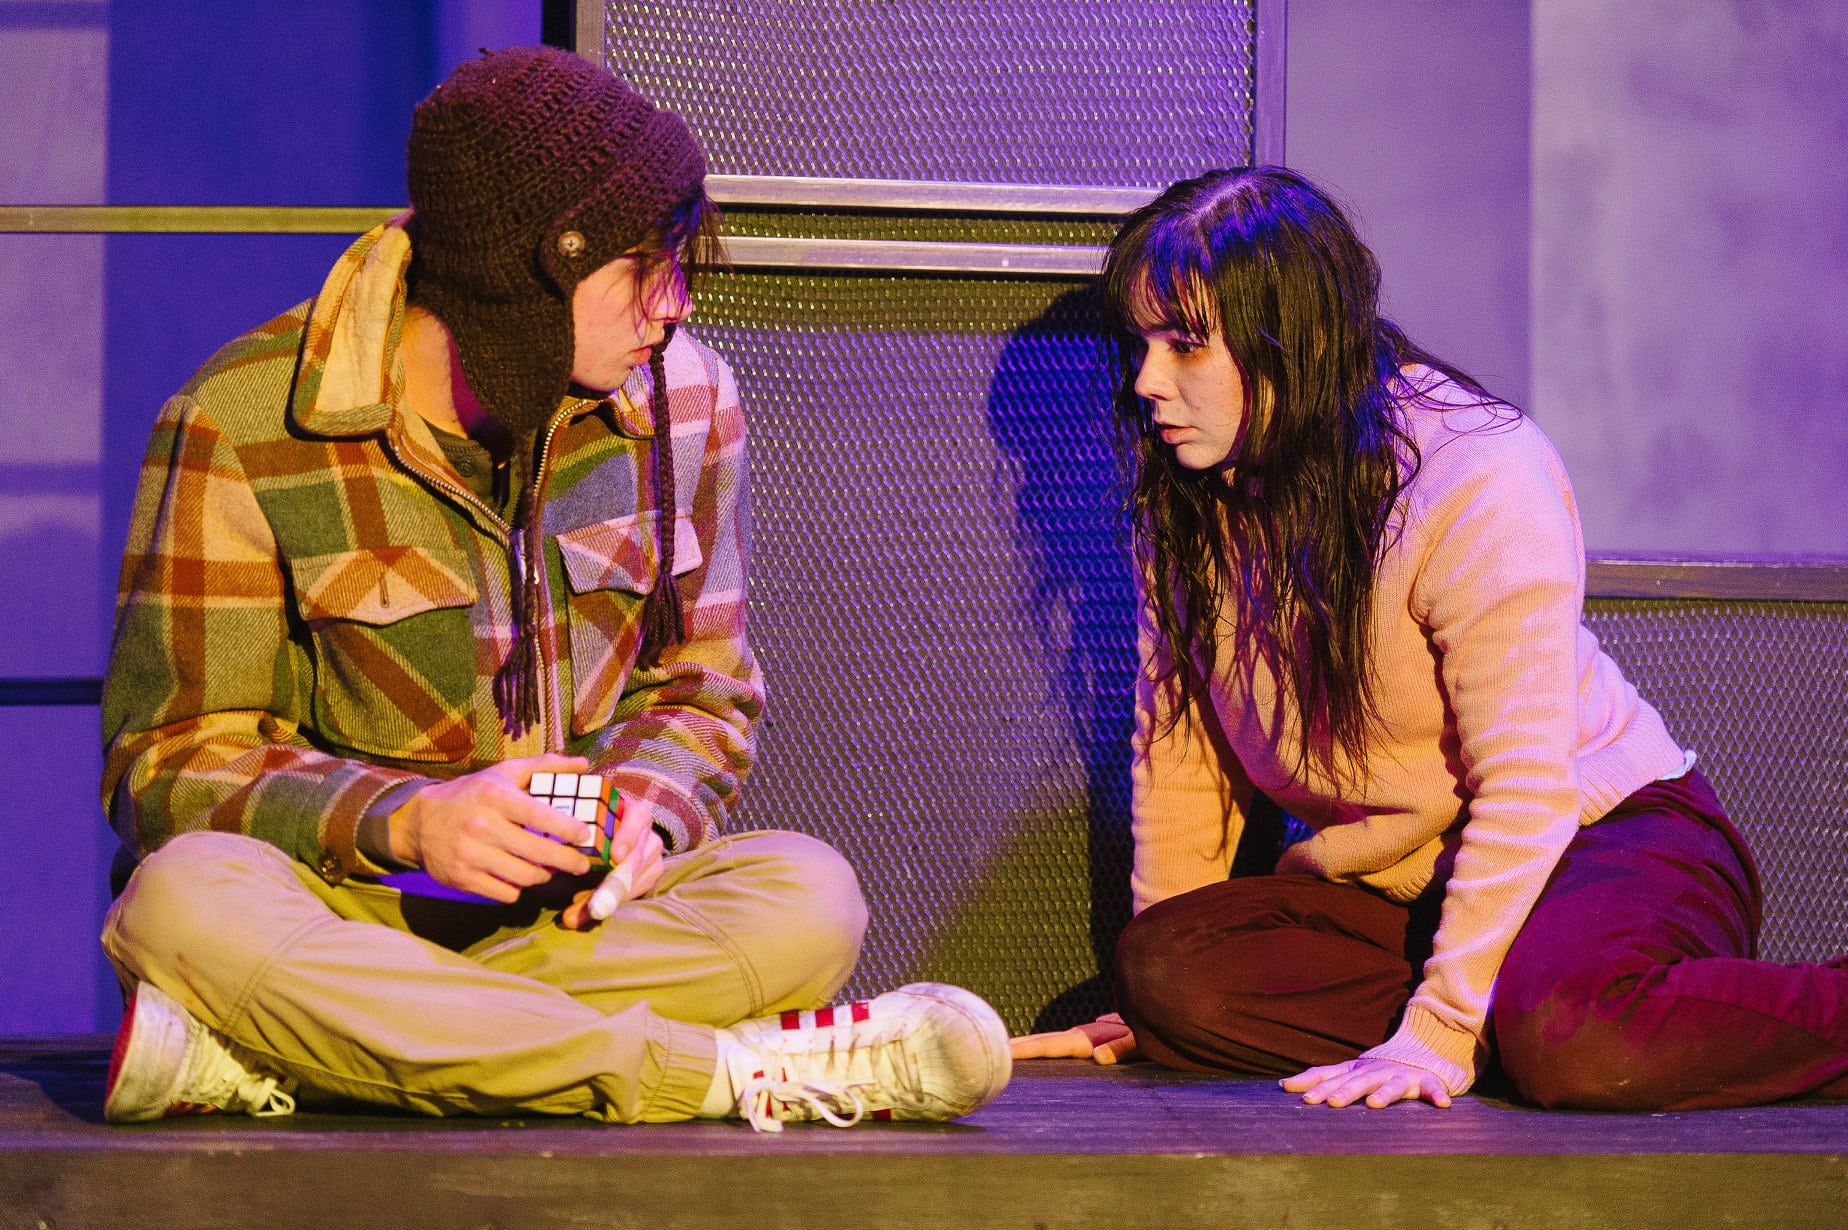 Jordan Champe (Oskar) and Karli Cole (Eli) in Let The Right One In, now playing at Maryland Ensemble Theatre. Photo by David Spence/Spence Photography.